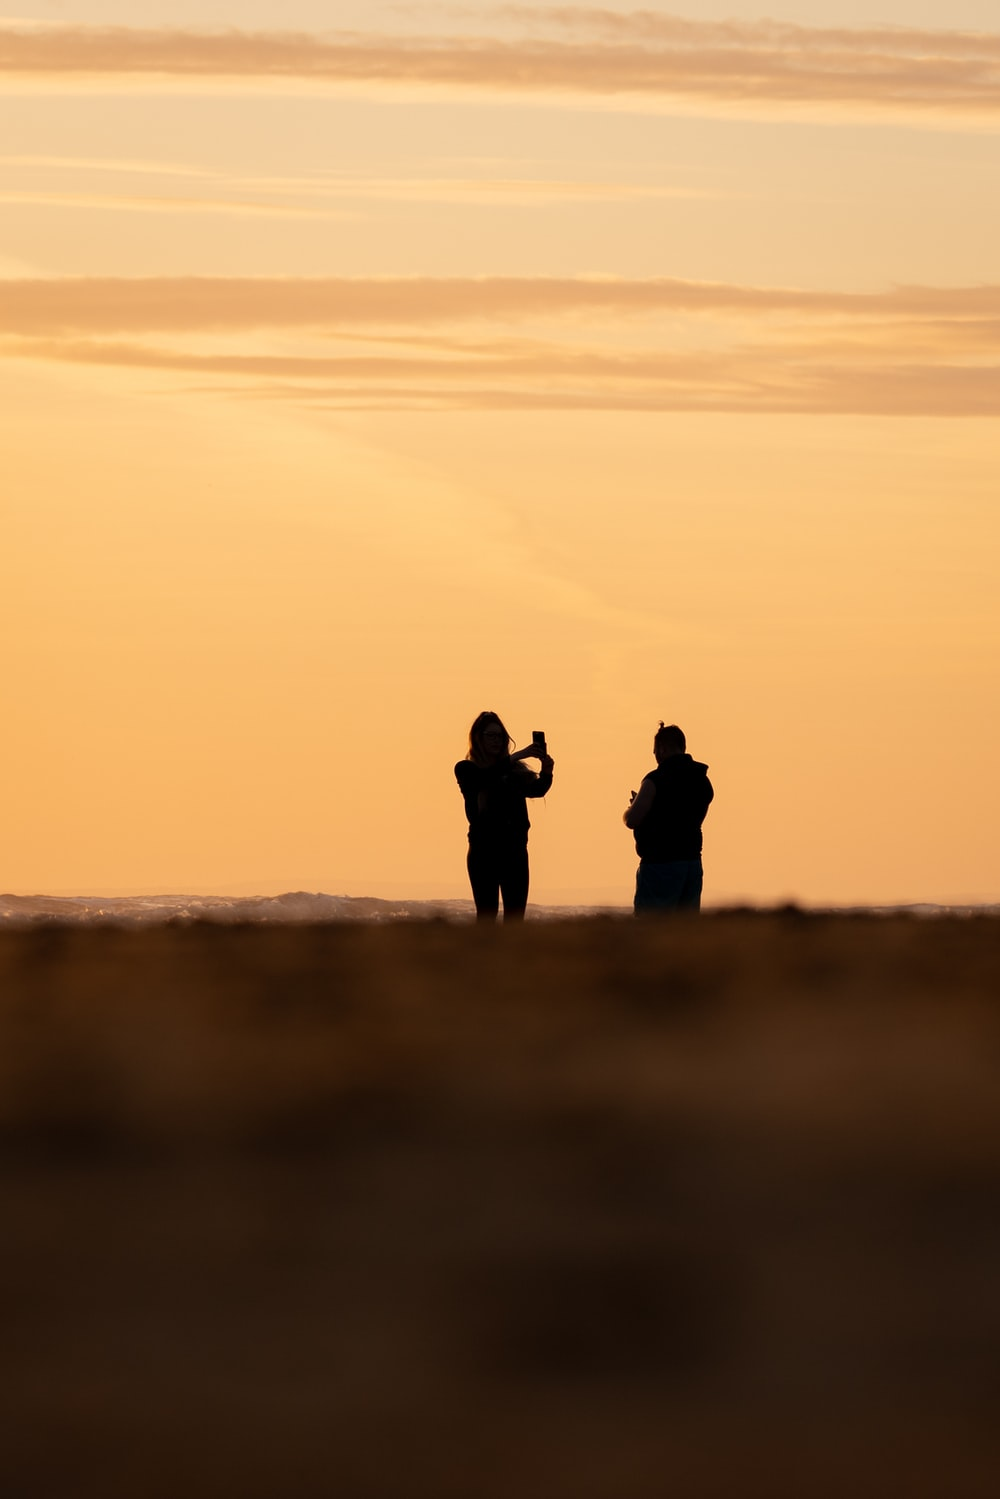 silhouette of 2 person standing on seashore during sunset